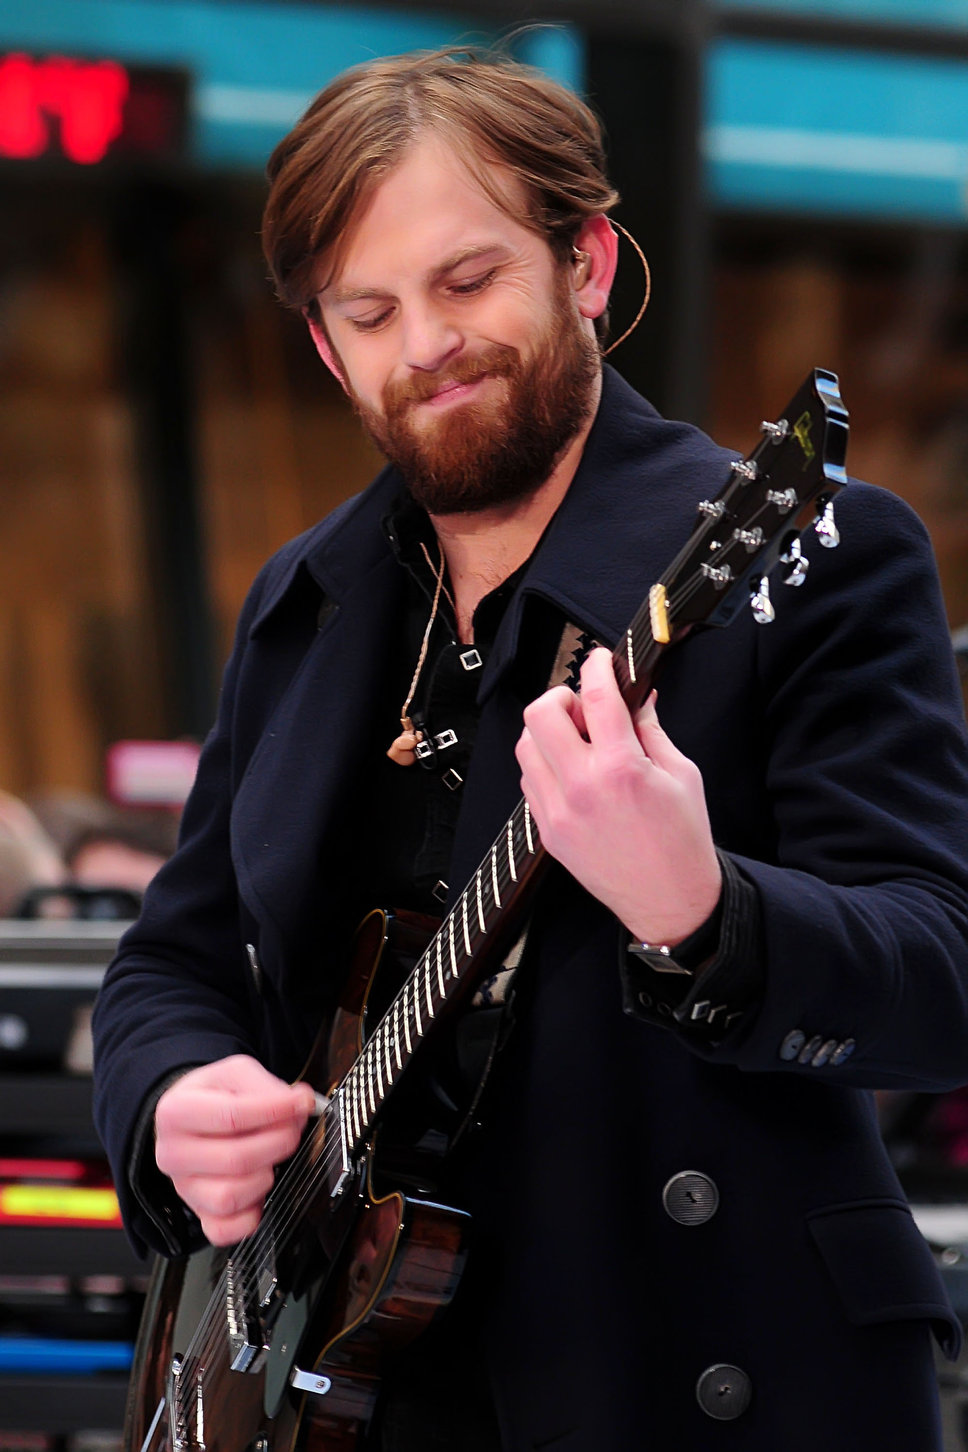 Caleb Followill Hairstyle Men Hairstyles Review Hairstyles